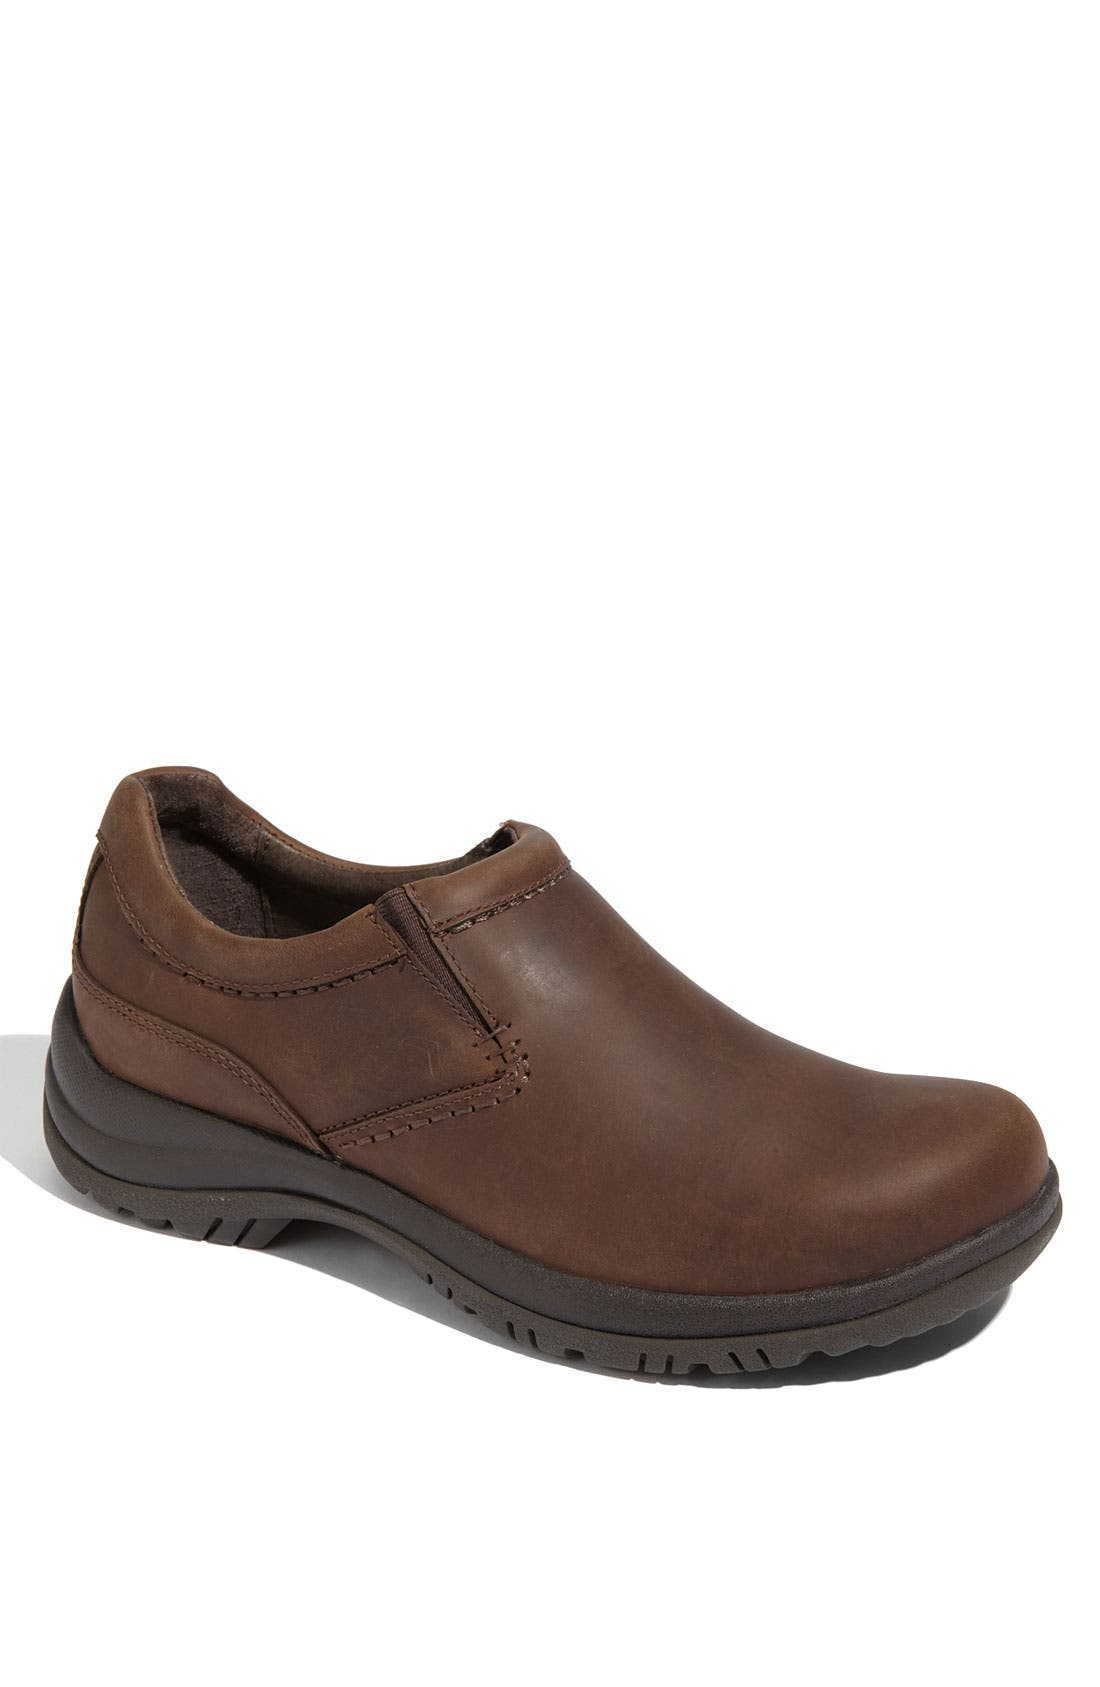 Alternate Image 1 Selected - Dansko 'Wynn' Slip-On